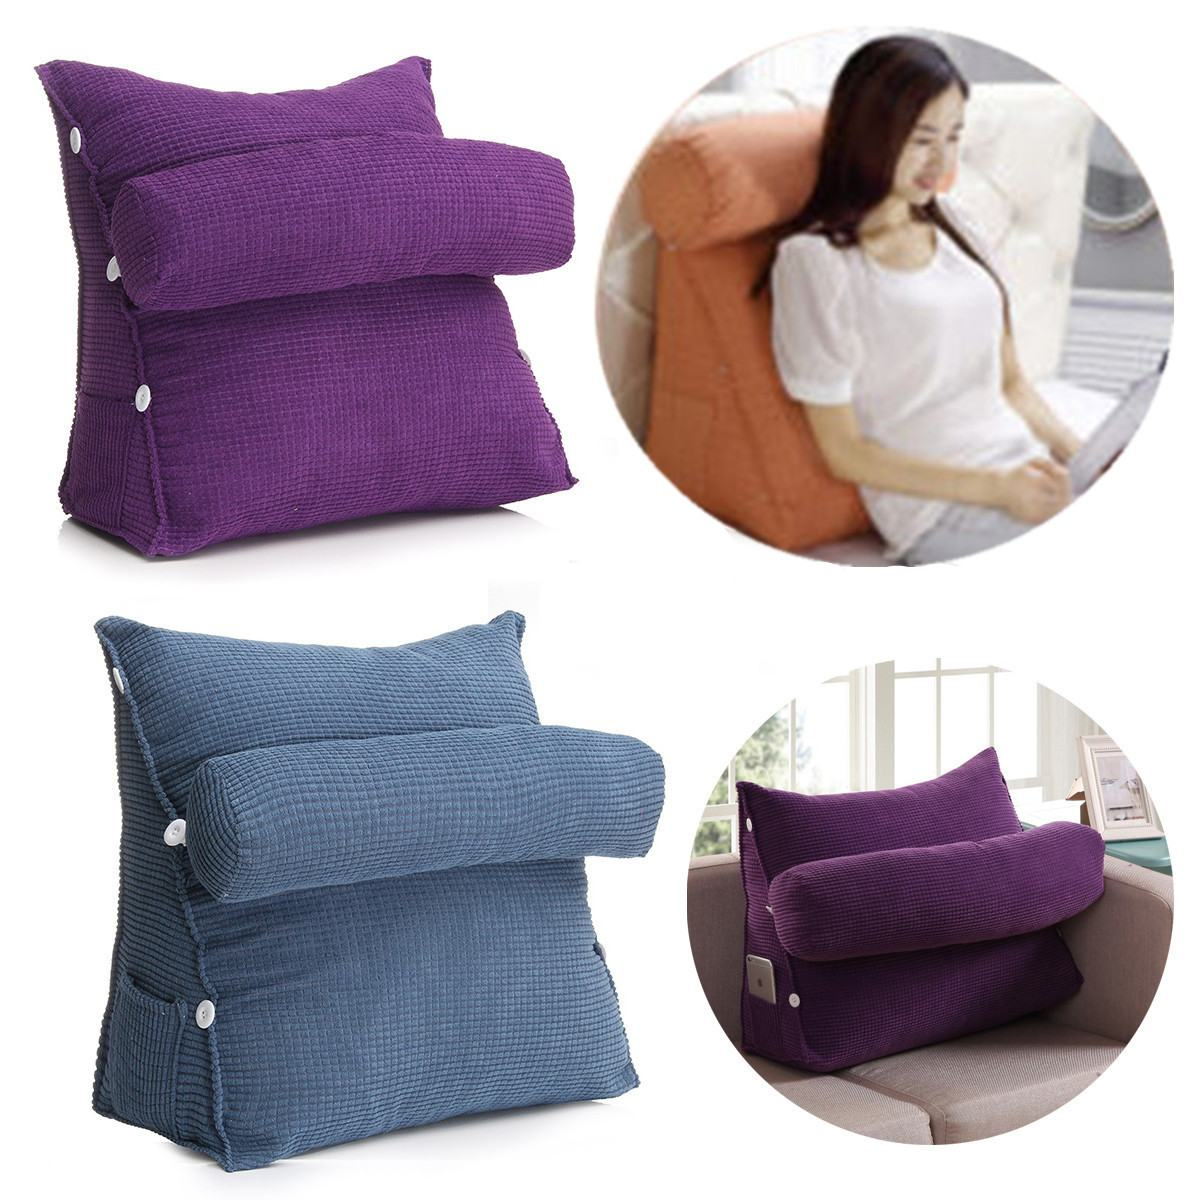 Reading Pillow Bed Bed Triangular Cushion Chair Bedside Lumbar Chair Backrest Lounger Lazy Office Chair Living Room Reading Pillow Household Decor